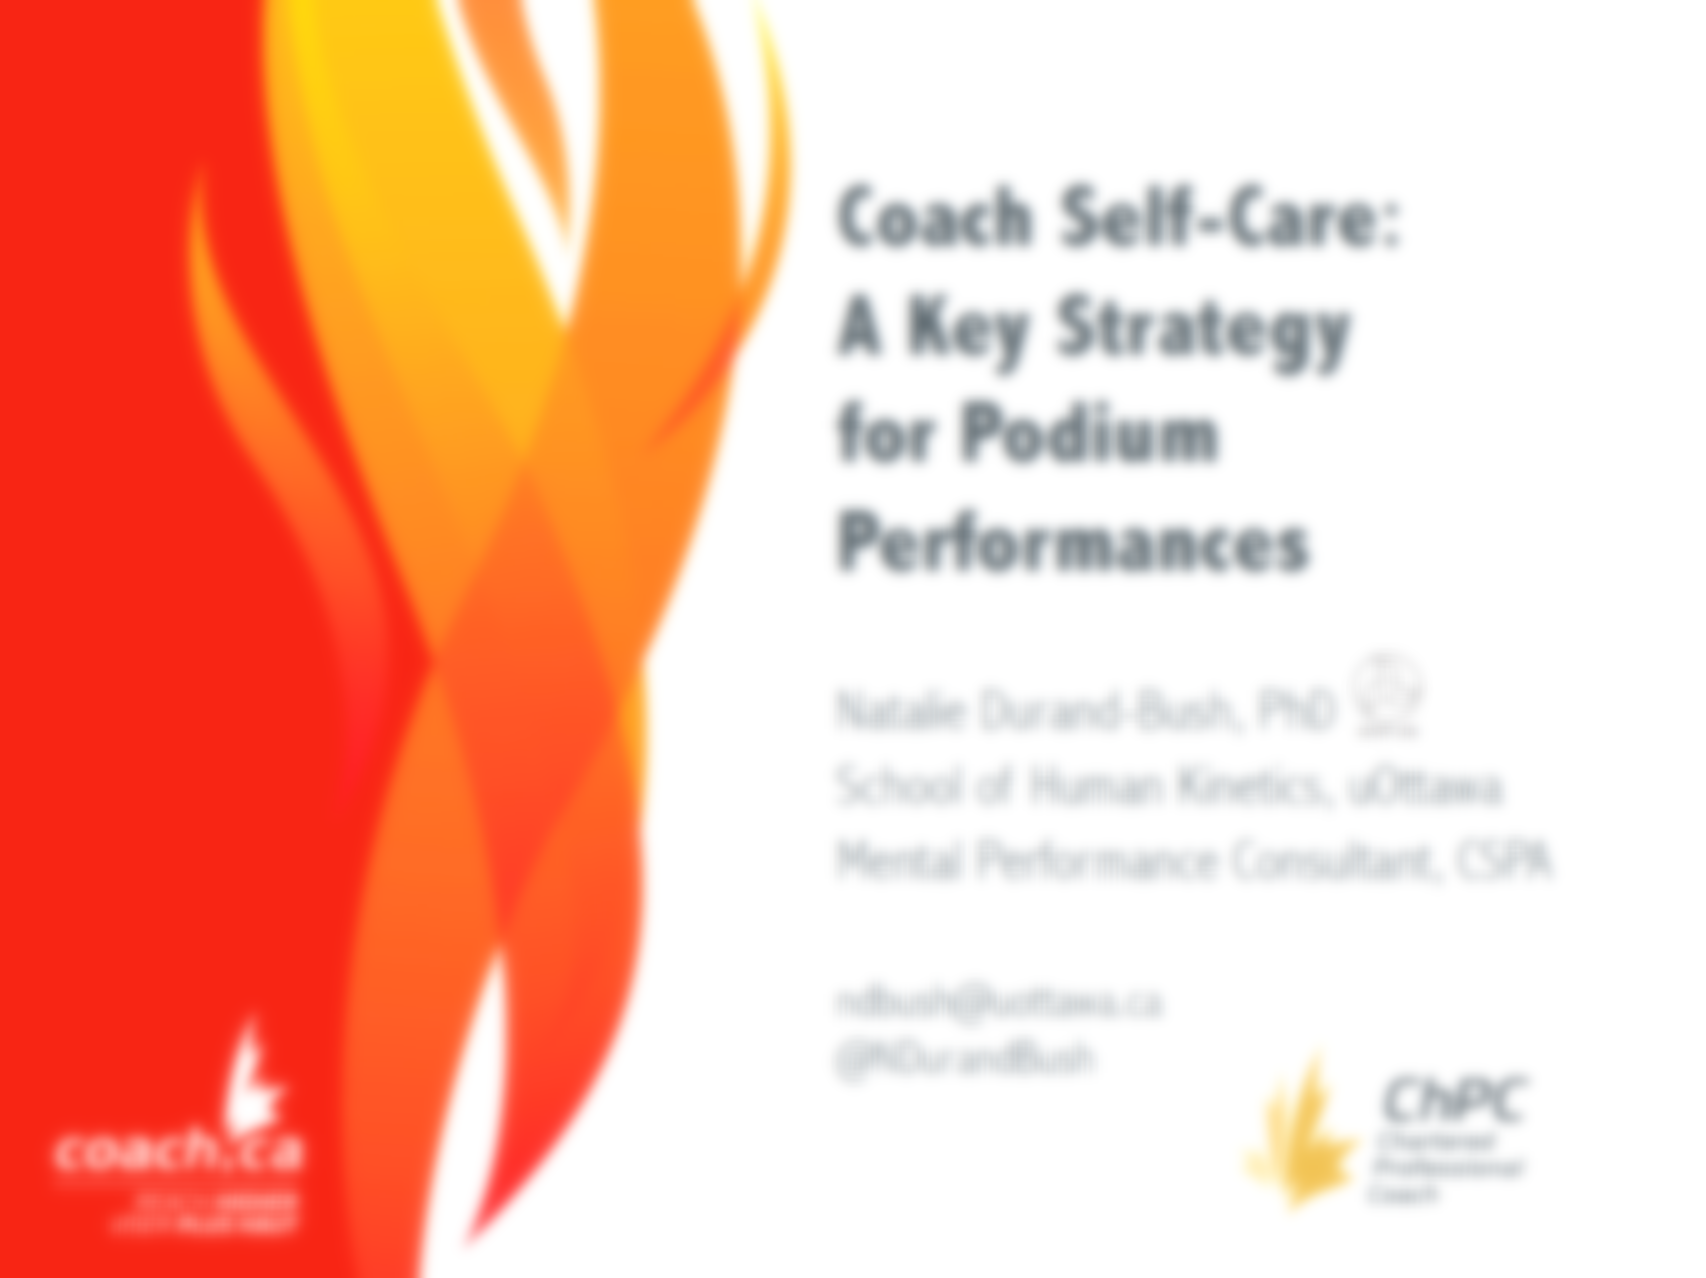 Daily self-care program for coaches